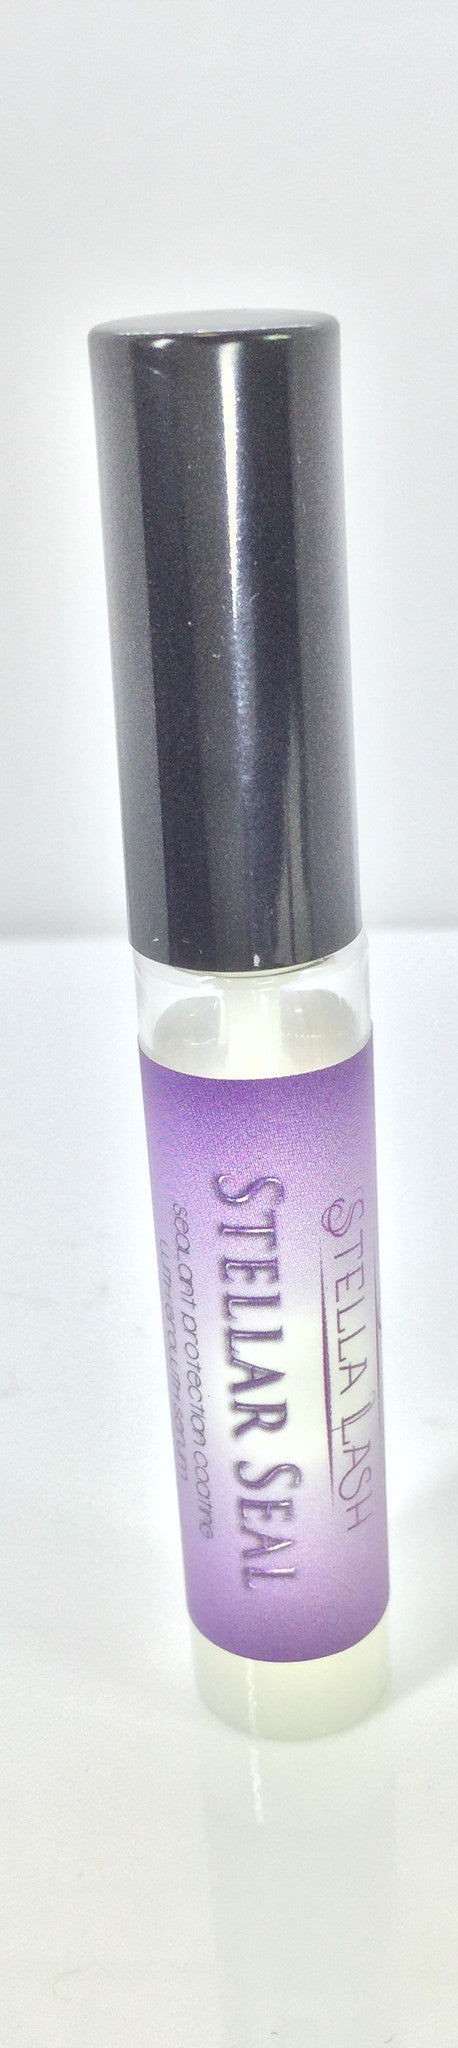 STELLAR SEAL Lash Sealant with Growth Serum - The Lash Shop @ StellaLash